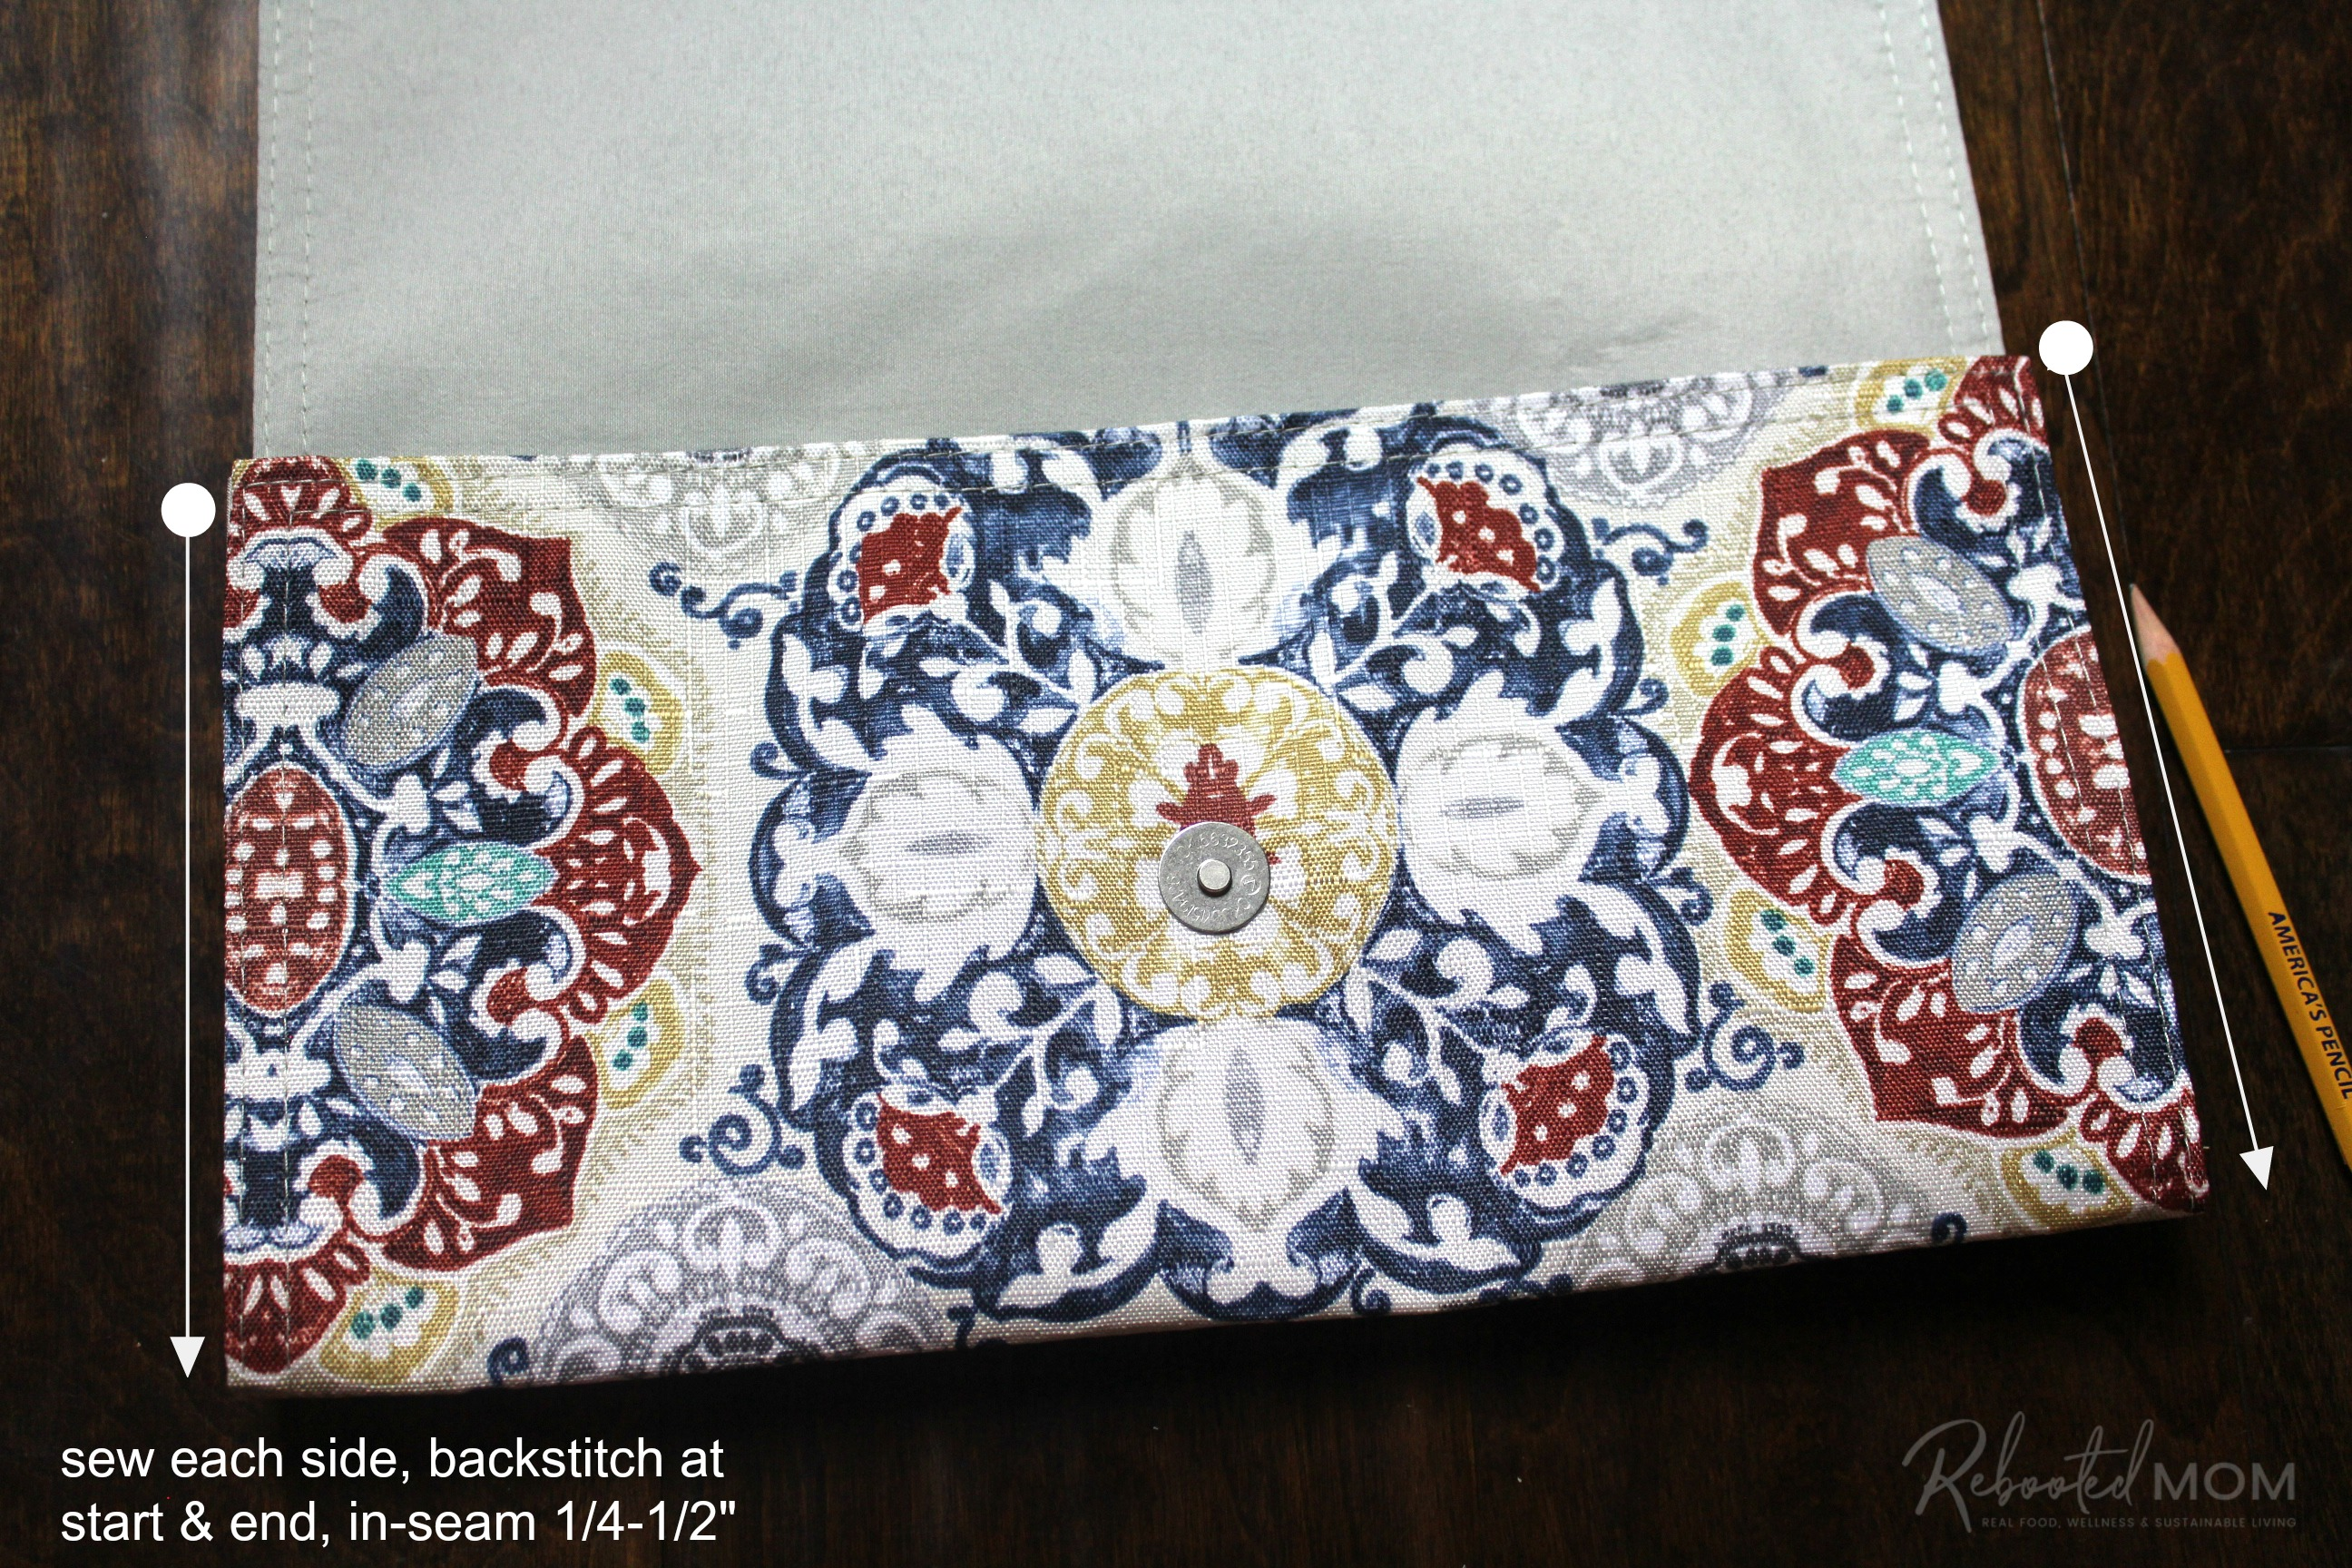 Sew the sides - placemat clutch purse \\ This placemat clutch purse comes together in under ten minutes for just a few dollars. It makes a stylish purse or case for baby wipes and a few diapers!